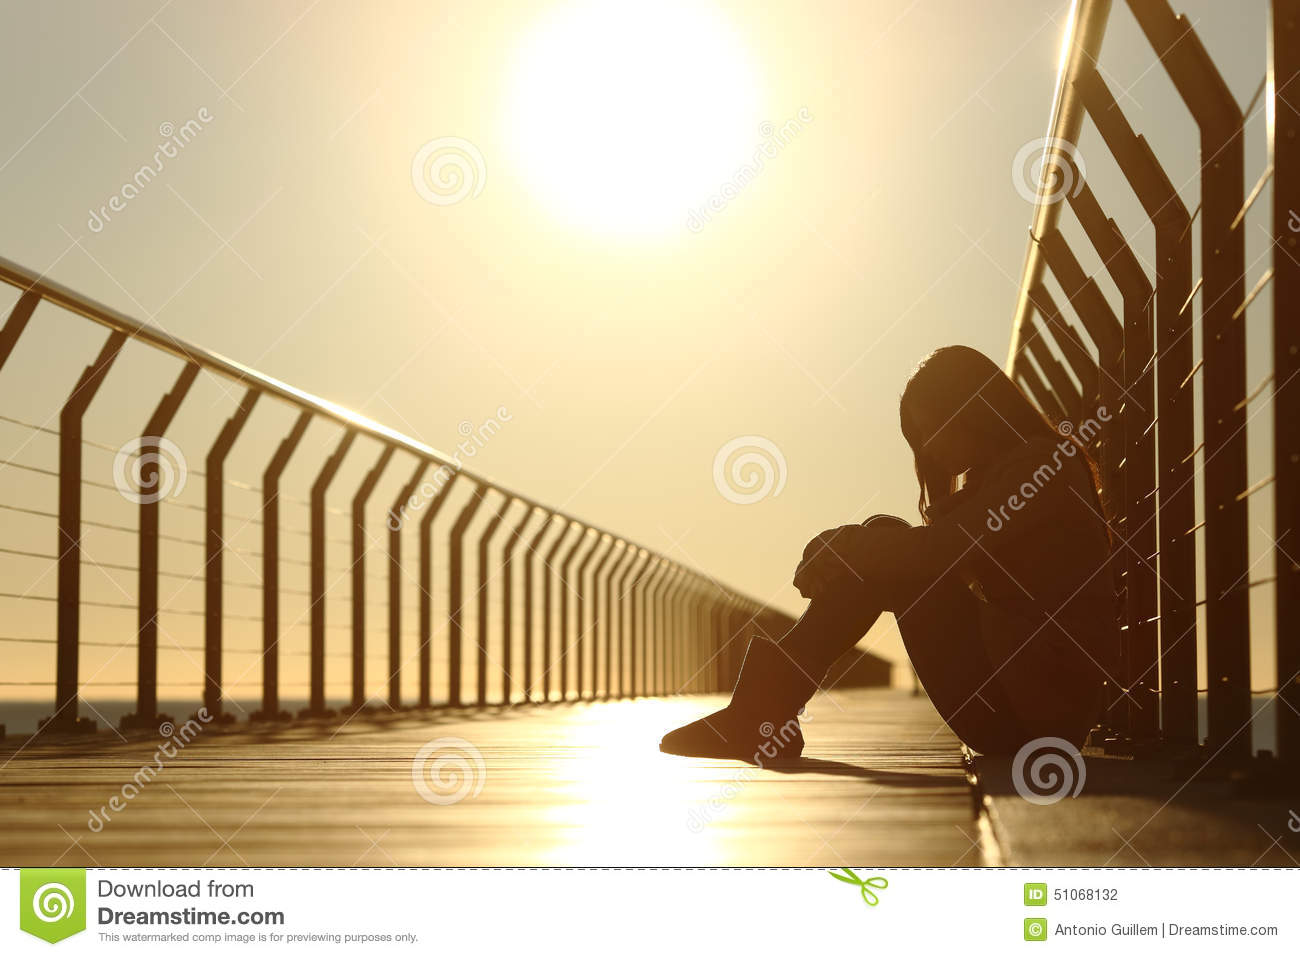 Sad teenager girl depressed sitting in a bridge at sunset